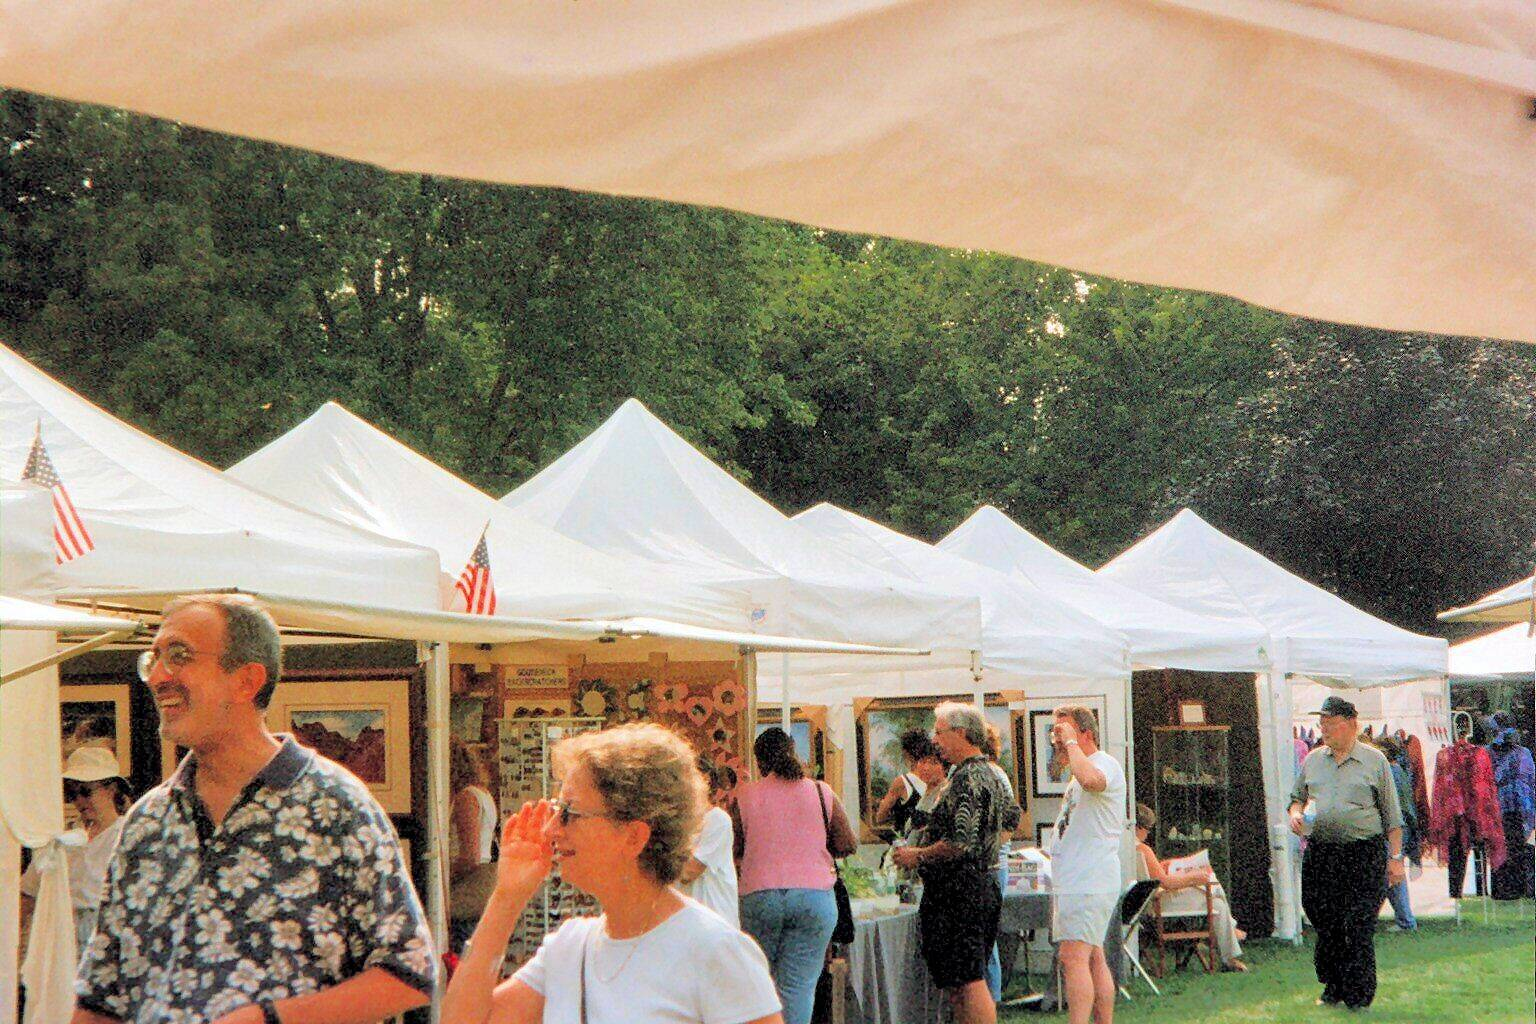 Artists & Crafts artists will fill Socoville Park in Oak Park with work they themselves created during the 40th Annual Oak ark Ave-Lake Arts & Crafts Show August 16-17American Society of Artists